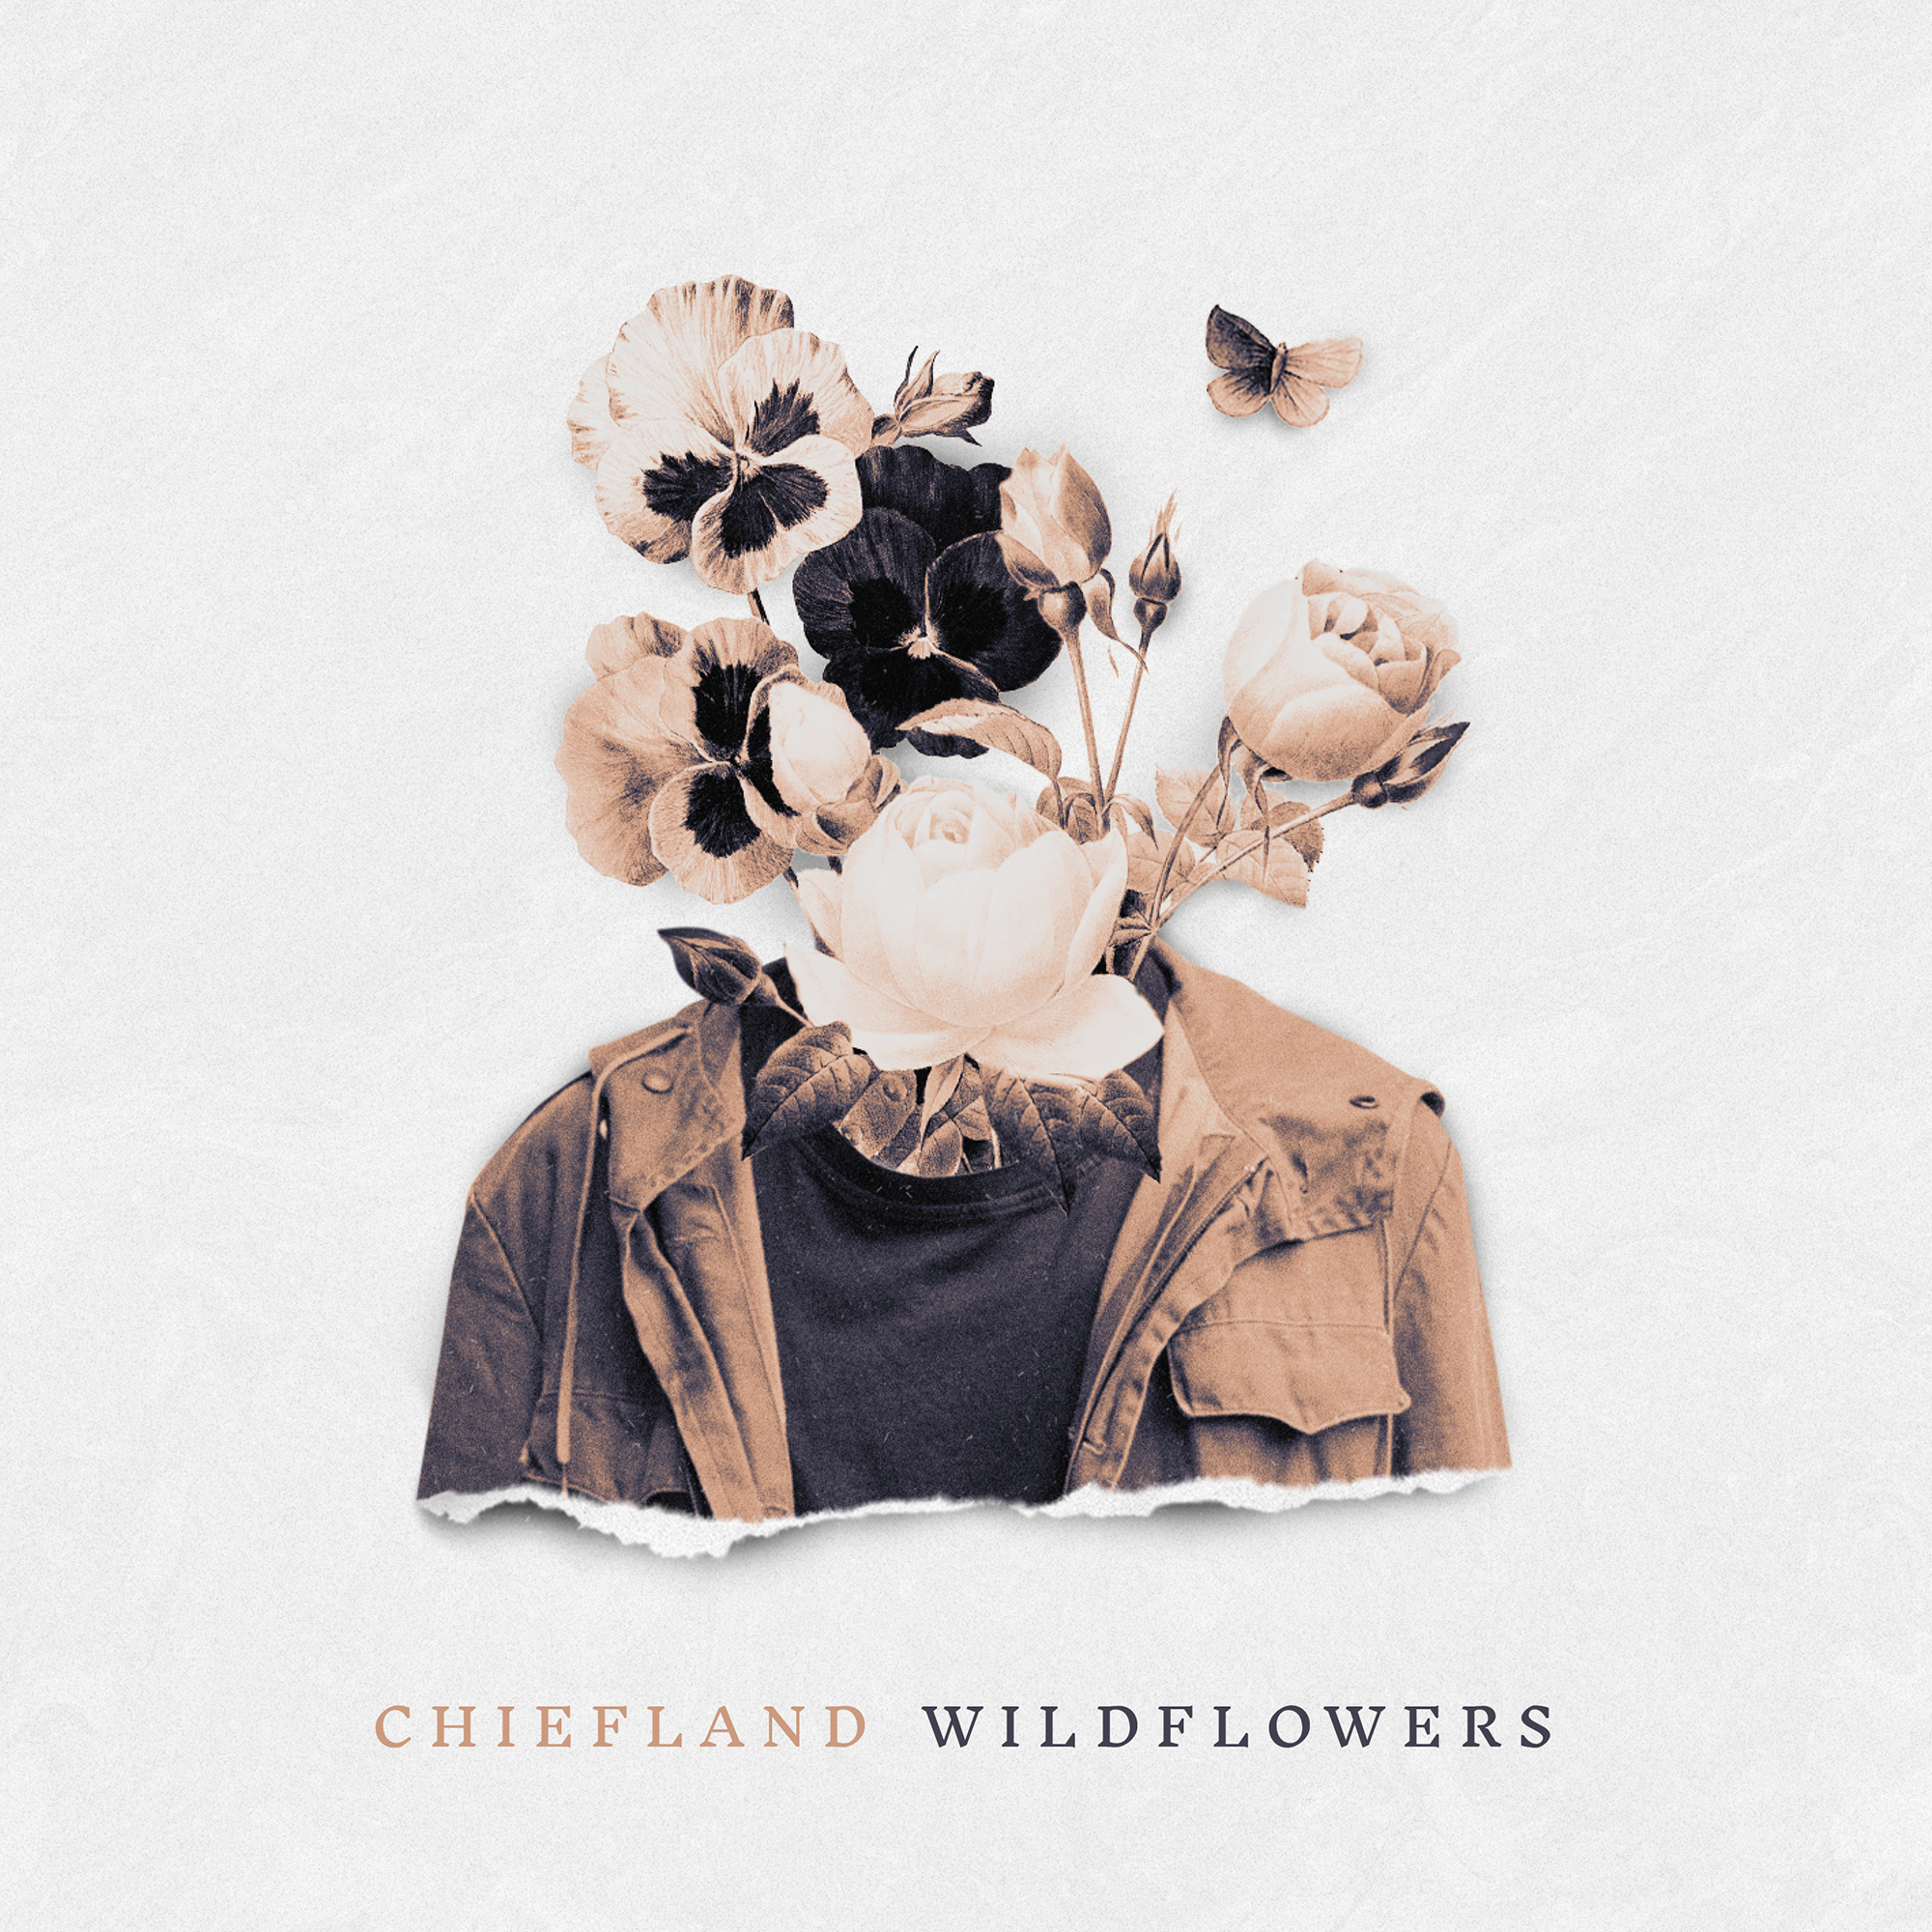 chiefland-wildflowers-ein-grosser-bund-emotionen-album-review